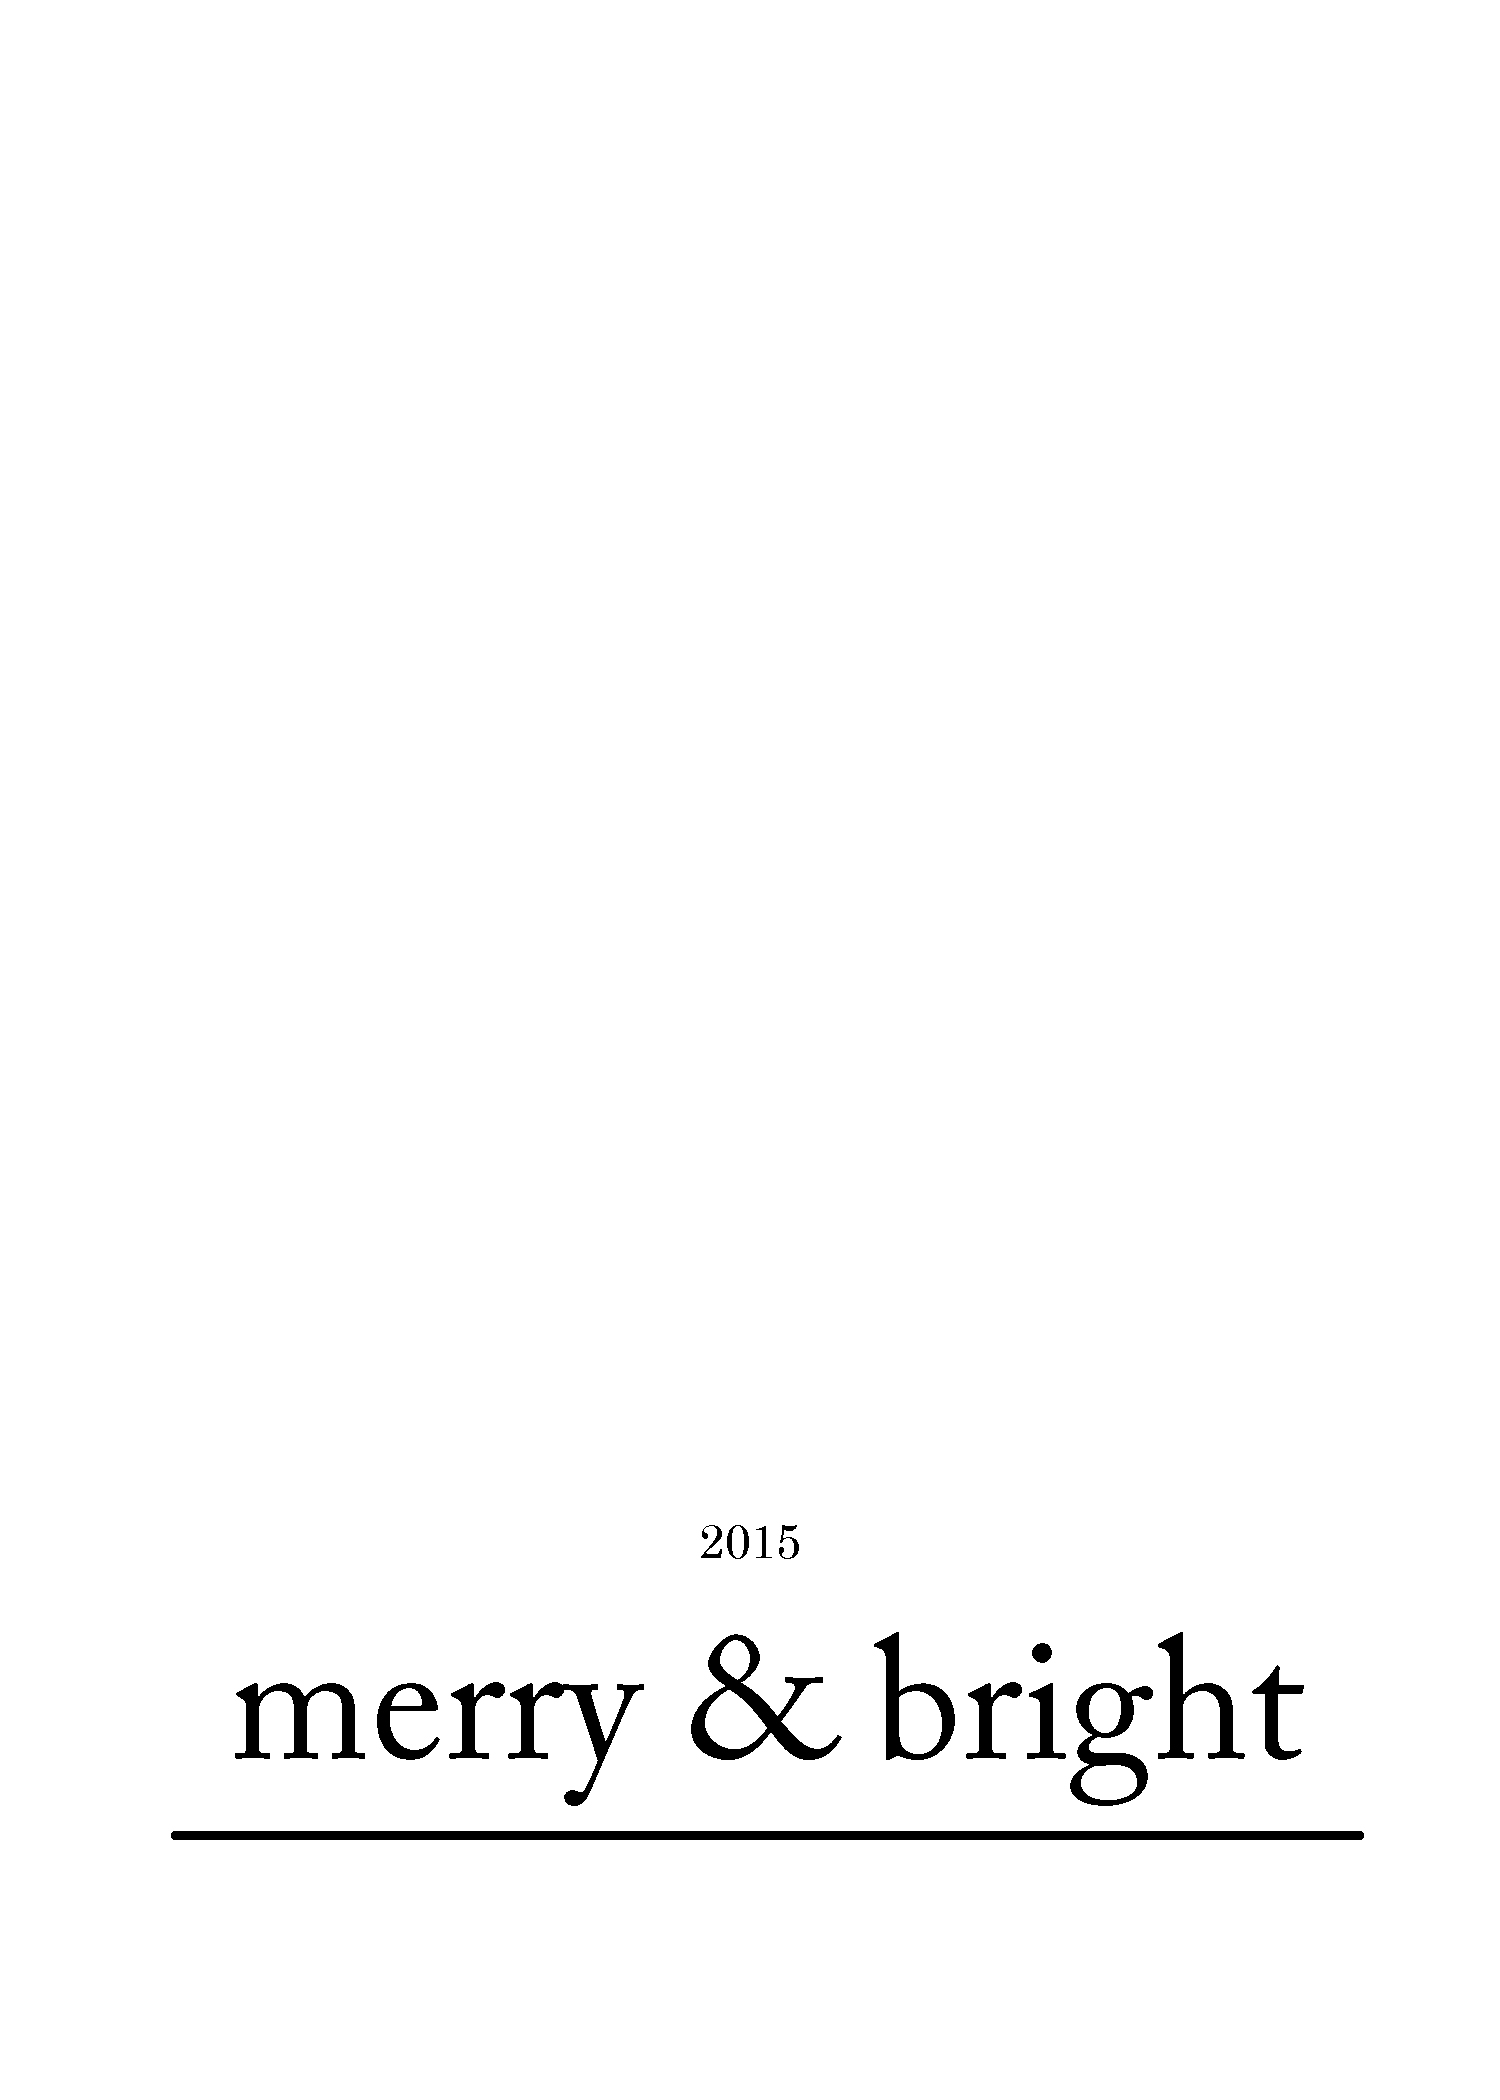 Free Christmas Card Templates - Christmas card templates black and white